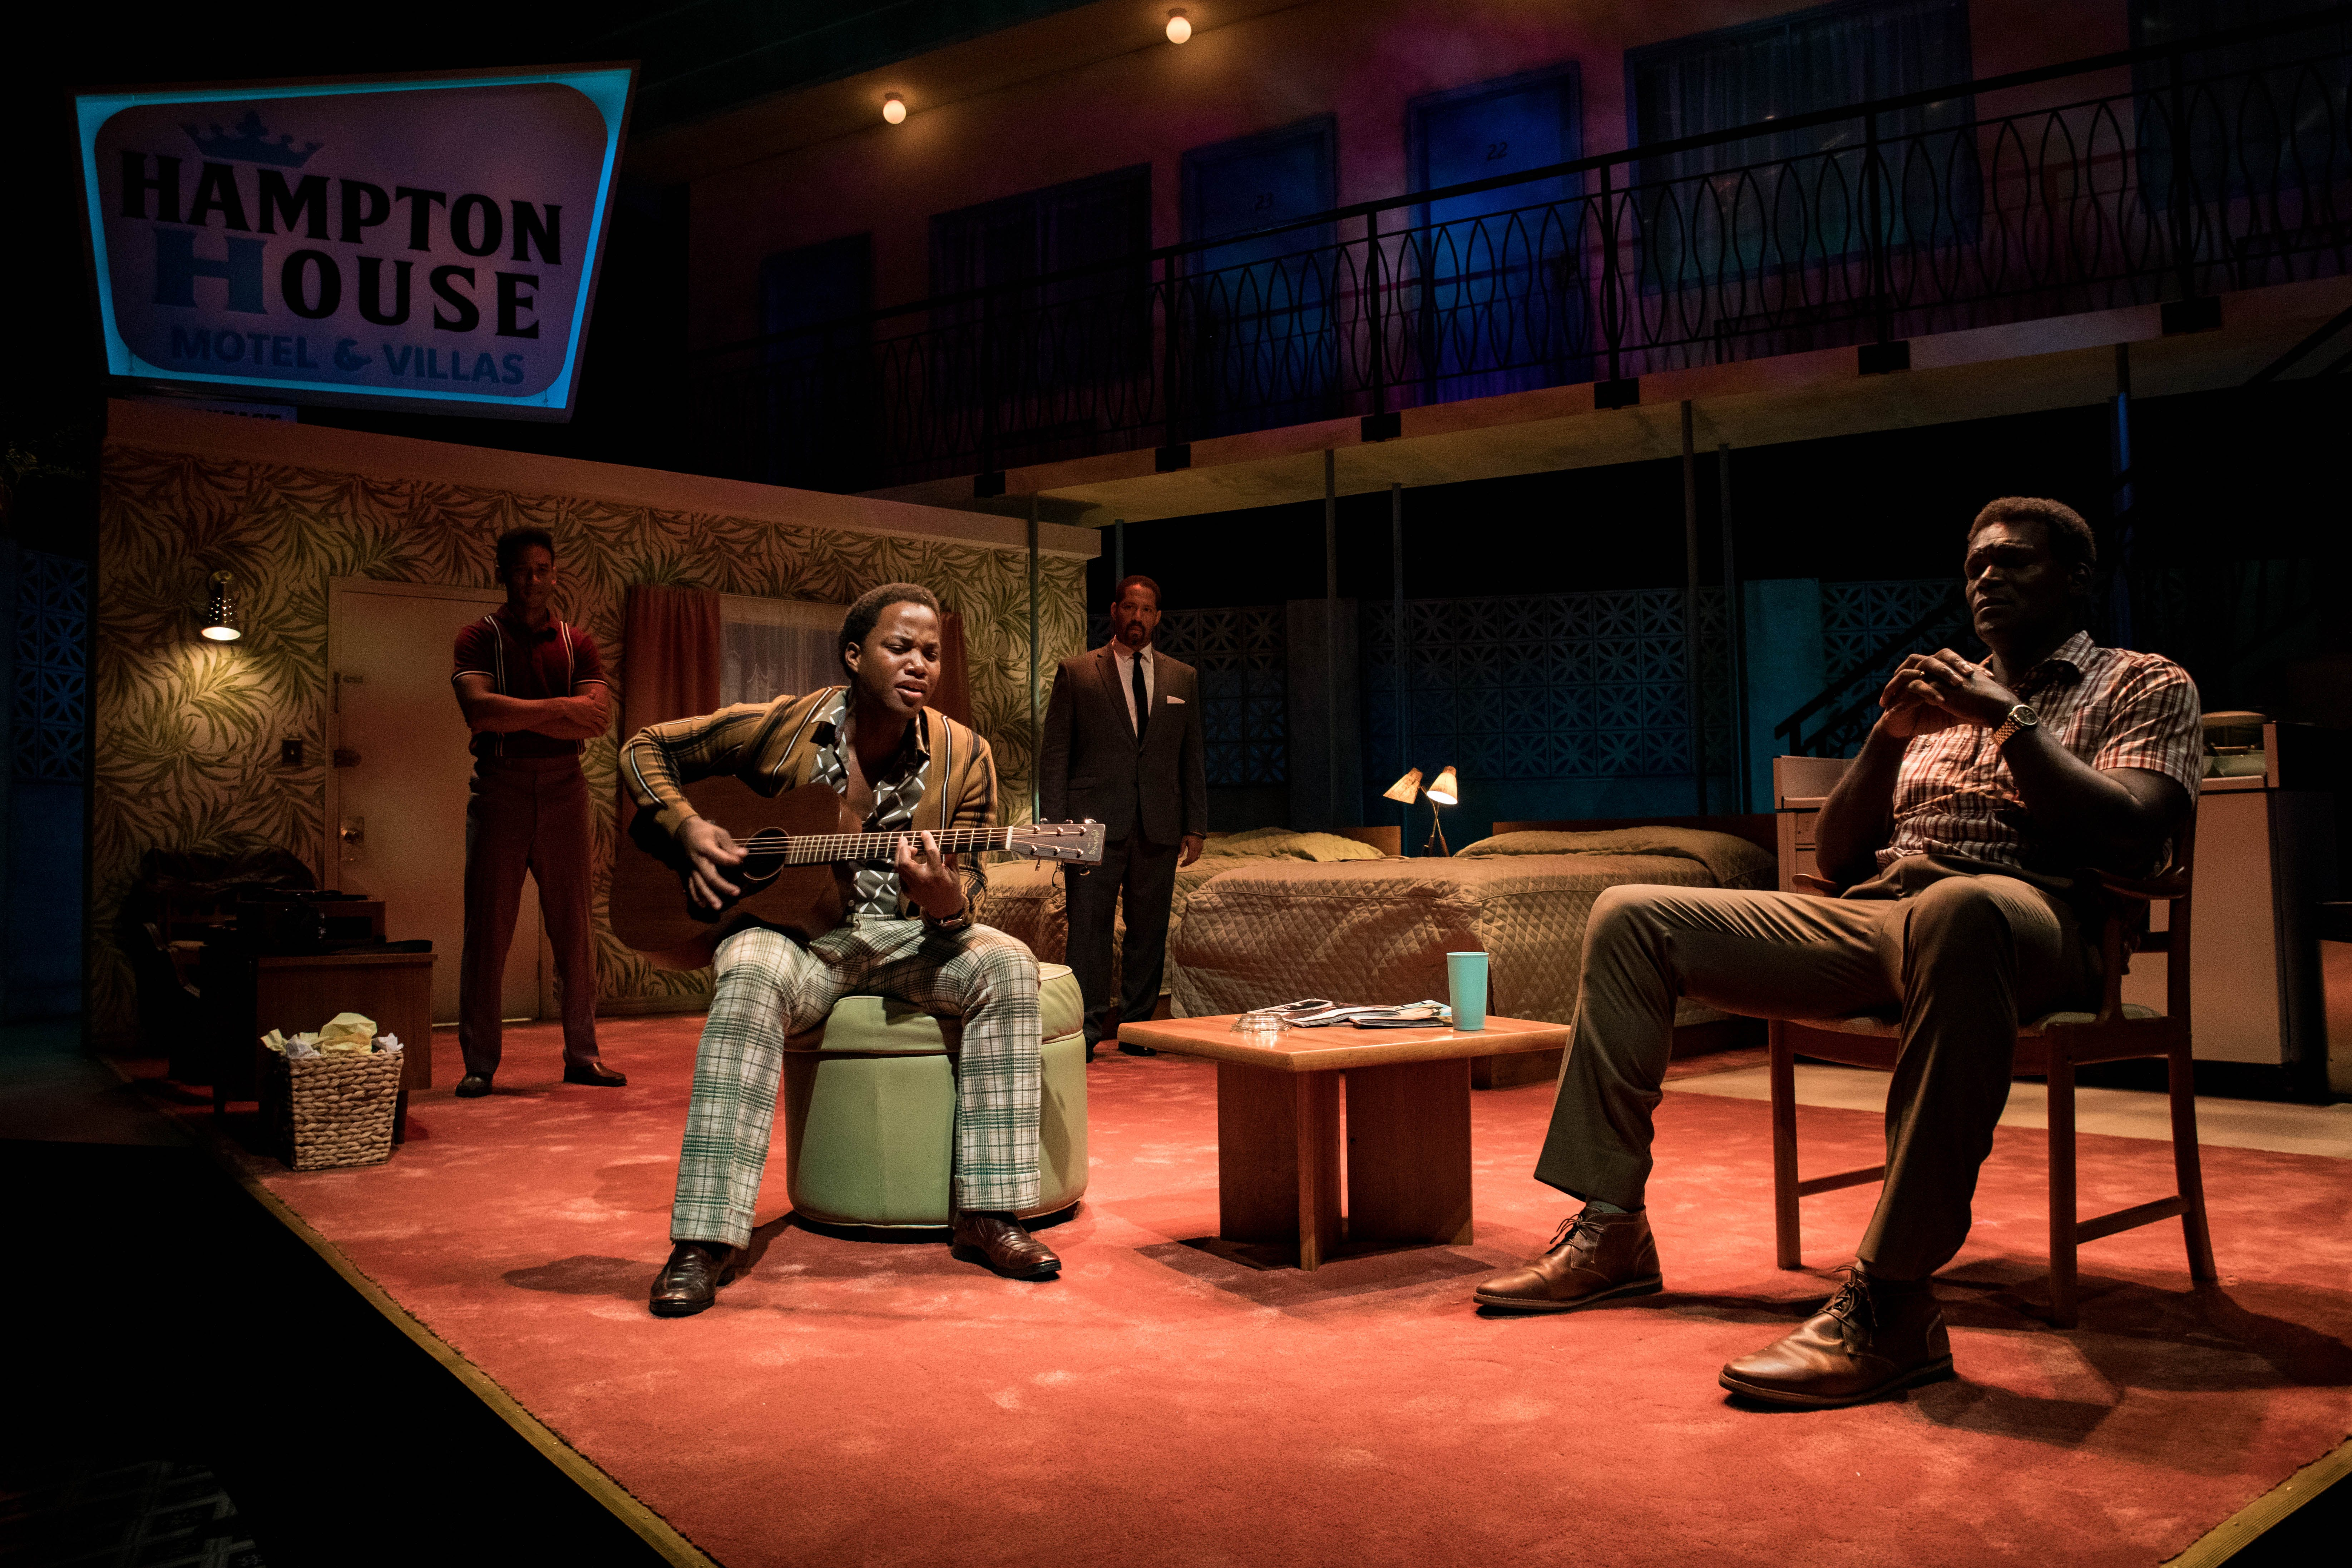 <p><em>A performance of &quot;One Night in Miami&quot; at Miami New Drama, which will receive a $750,000 investment from Knight to elevate and sustain the production of original, critically-acclaimed theater in Miami. Credit: Stian Roenning.</em></p>